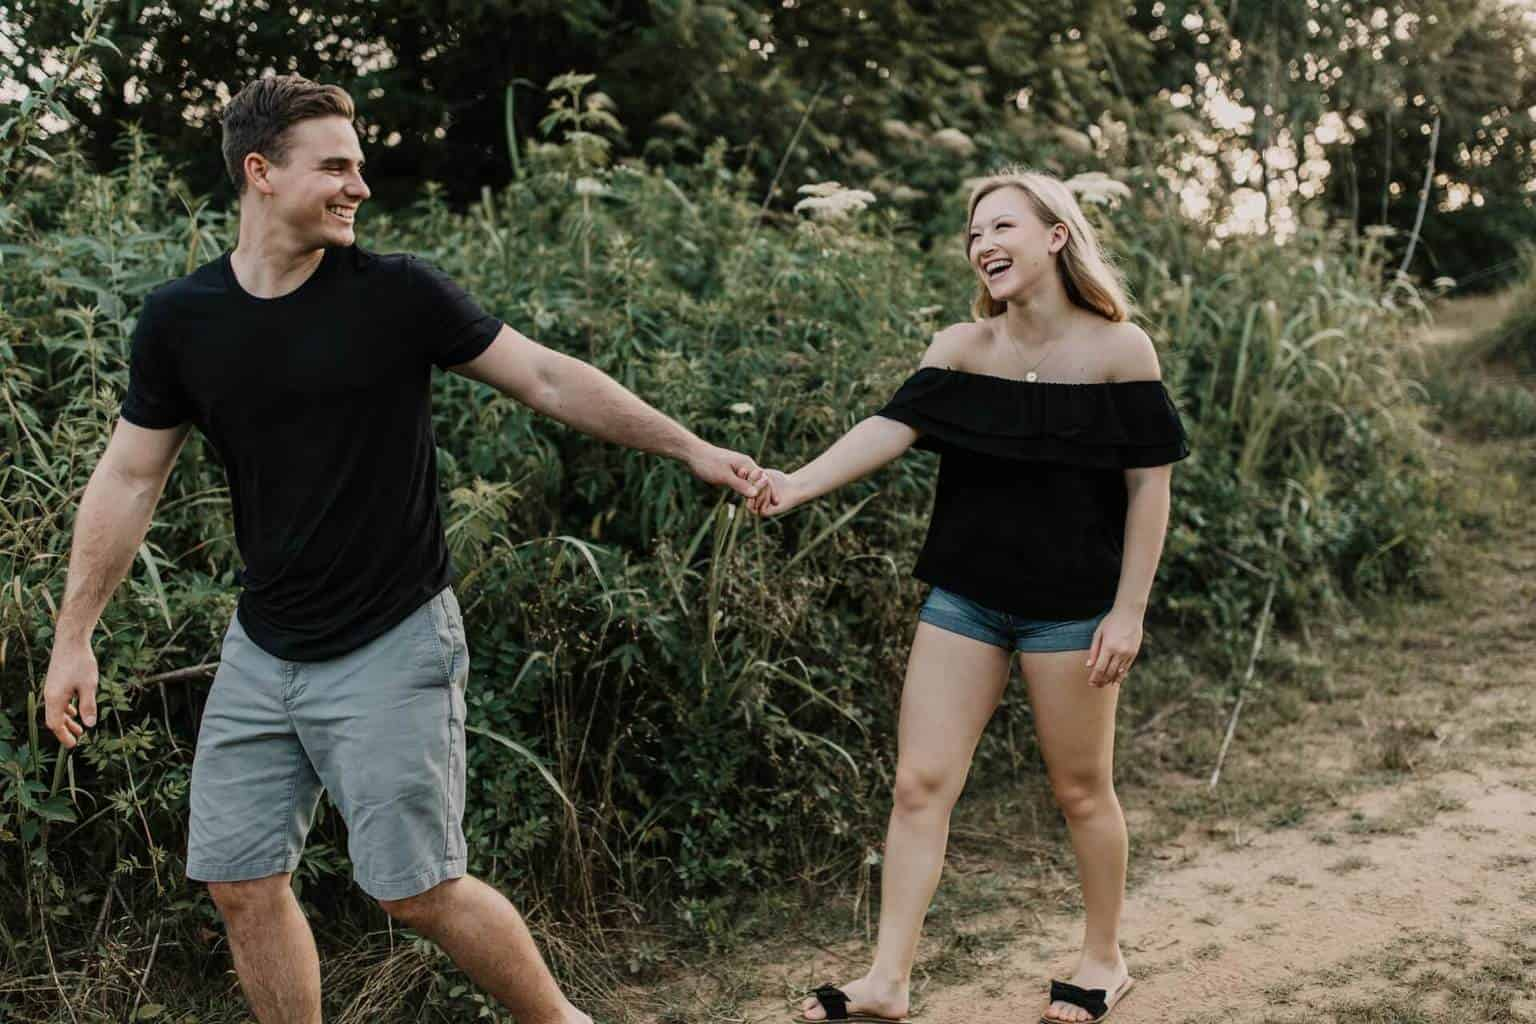 romantic things to do for your girlfriend - featured (1)